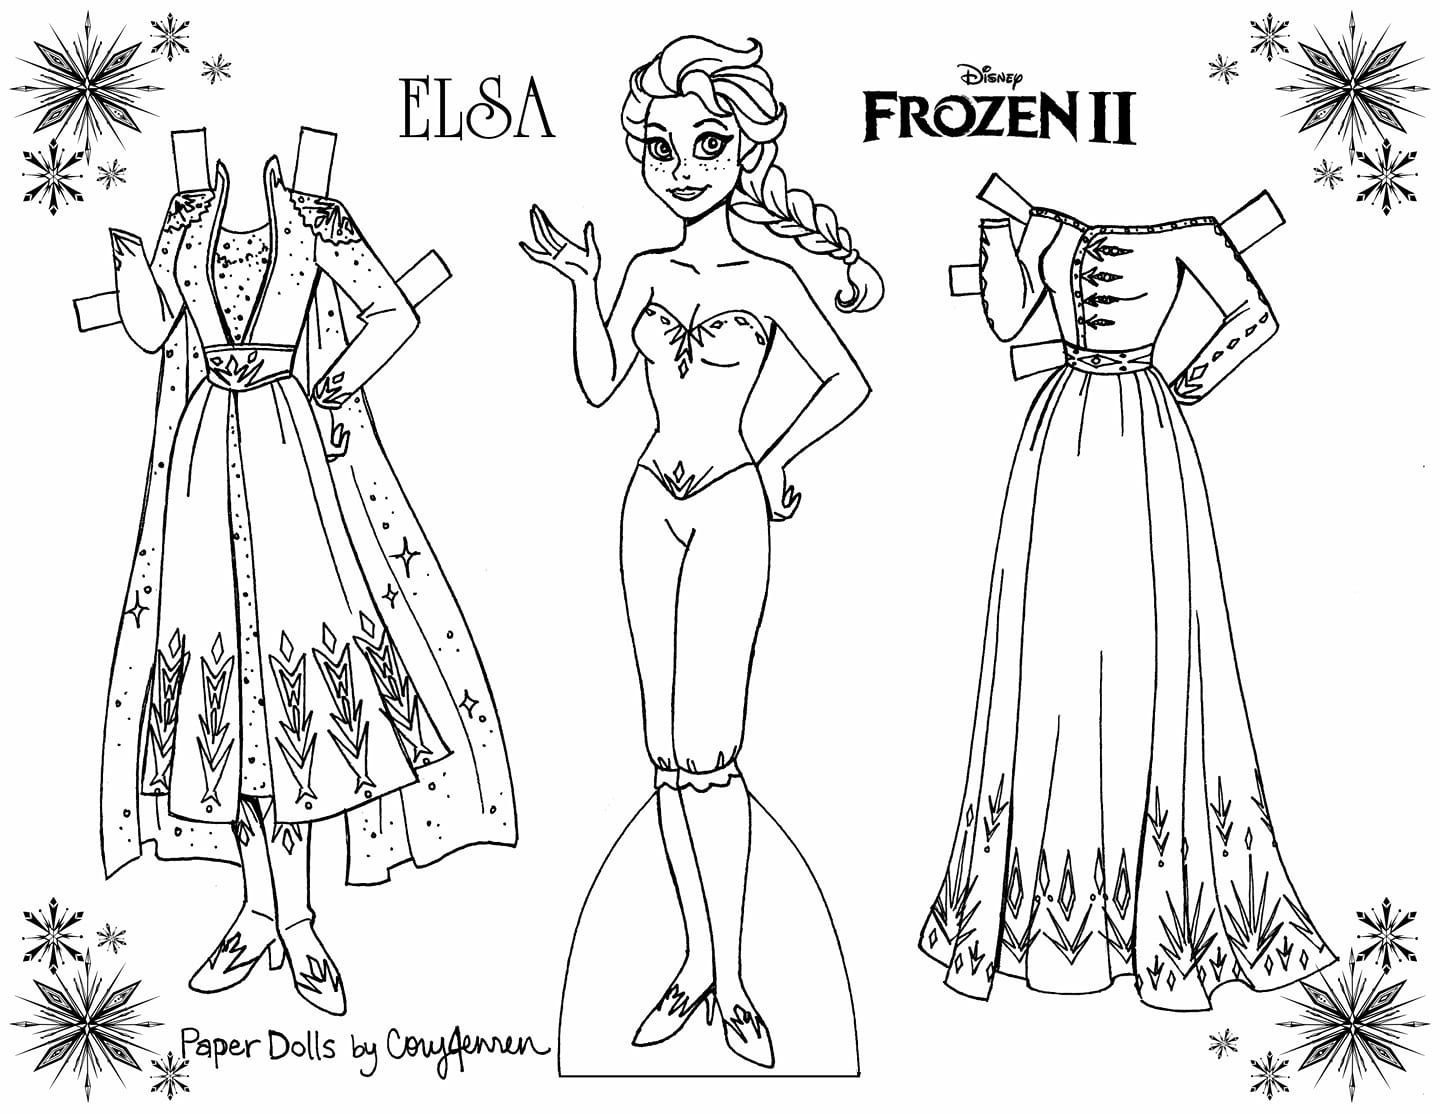 Pin By Irina On Paper Dolls Paper Dolls Paper Doll Template Frozen Paper Dolls